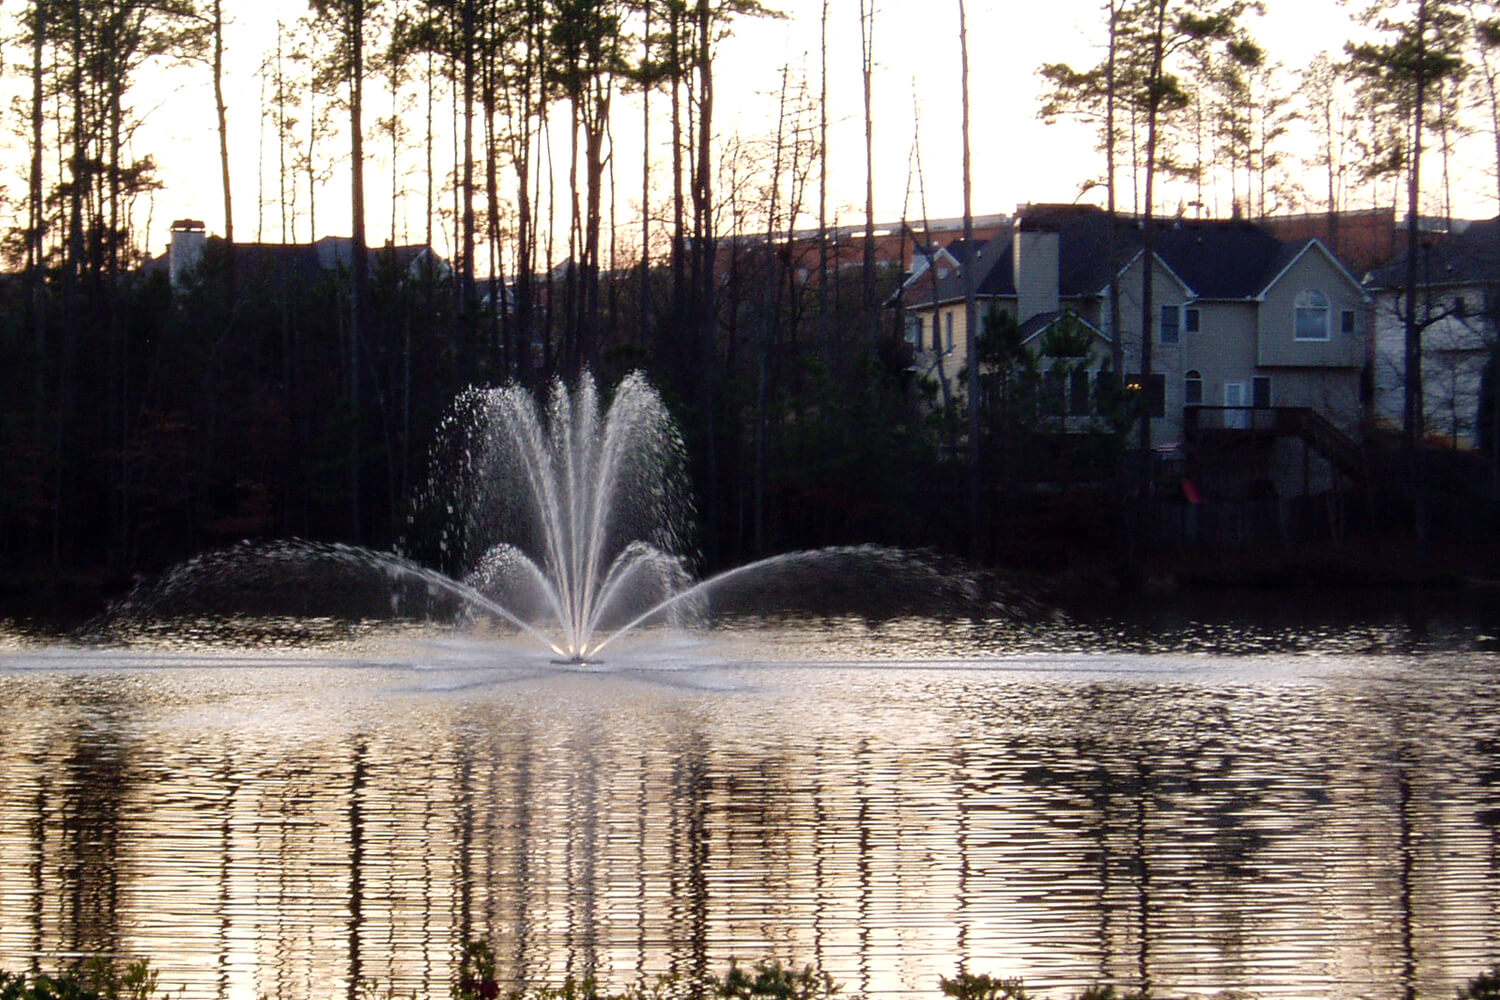 One of Otterbine's Genesis Aerating Fountains